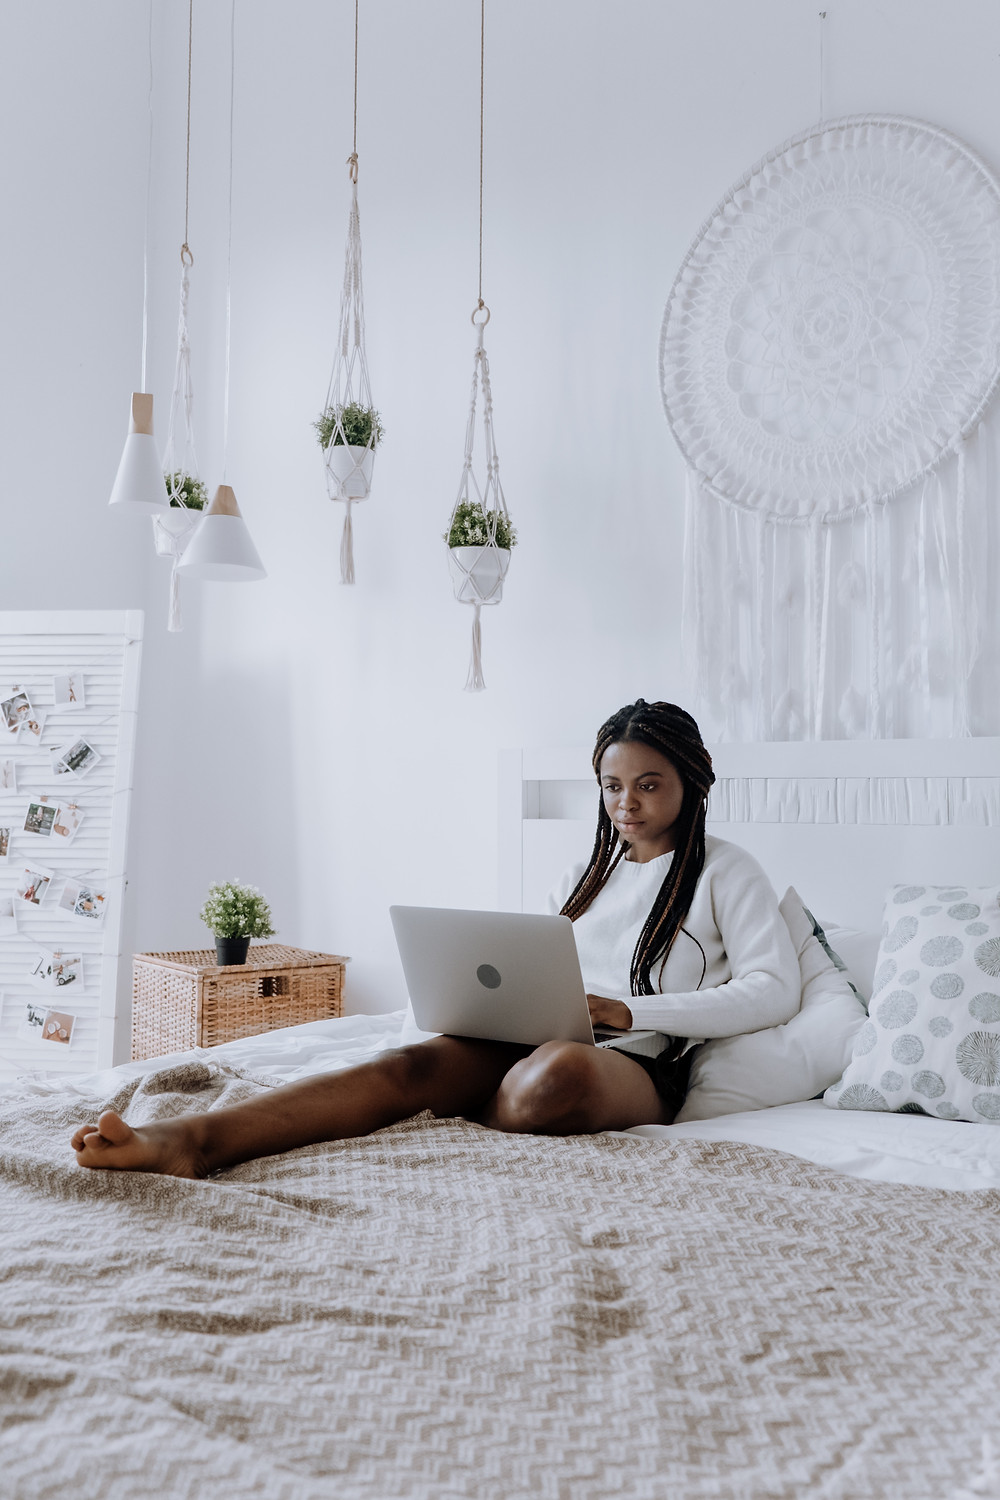 Child relaxing in decorated room